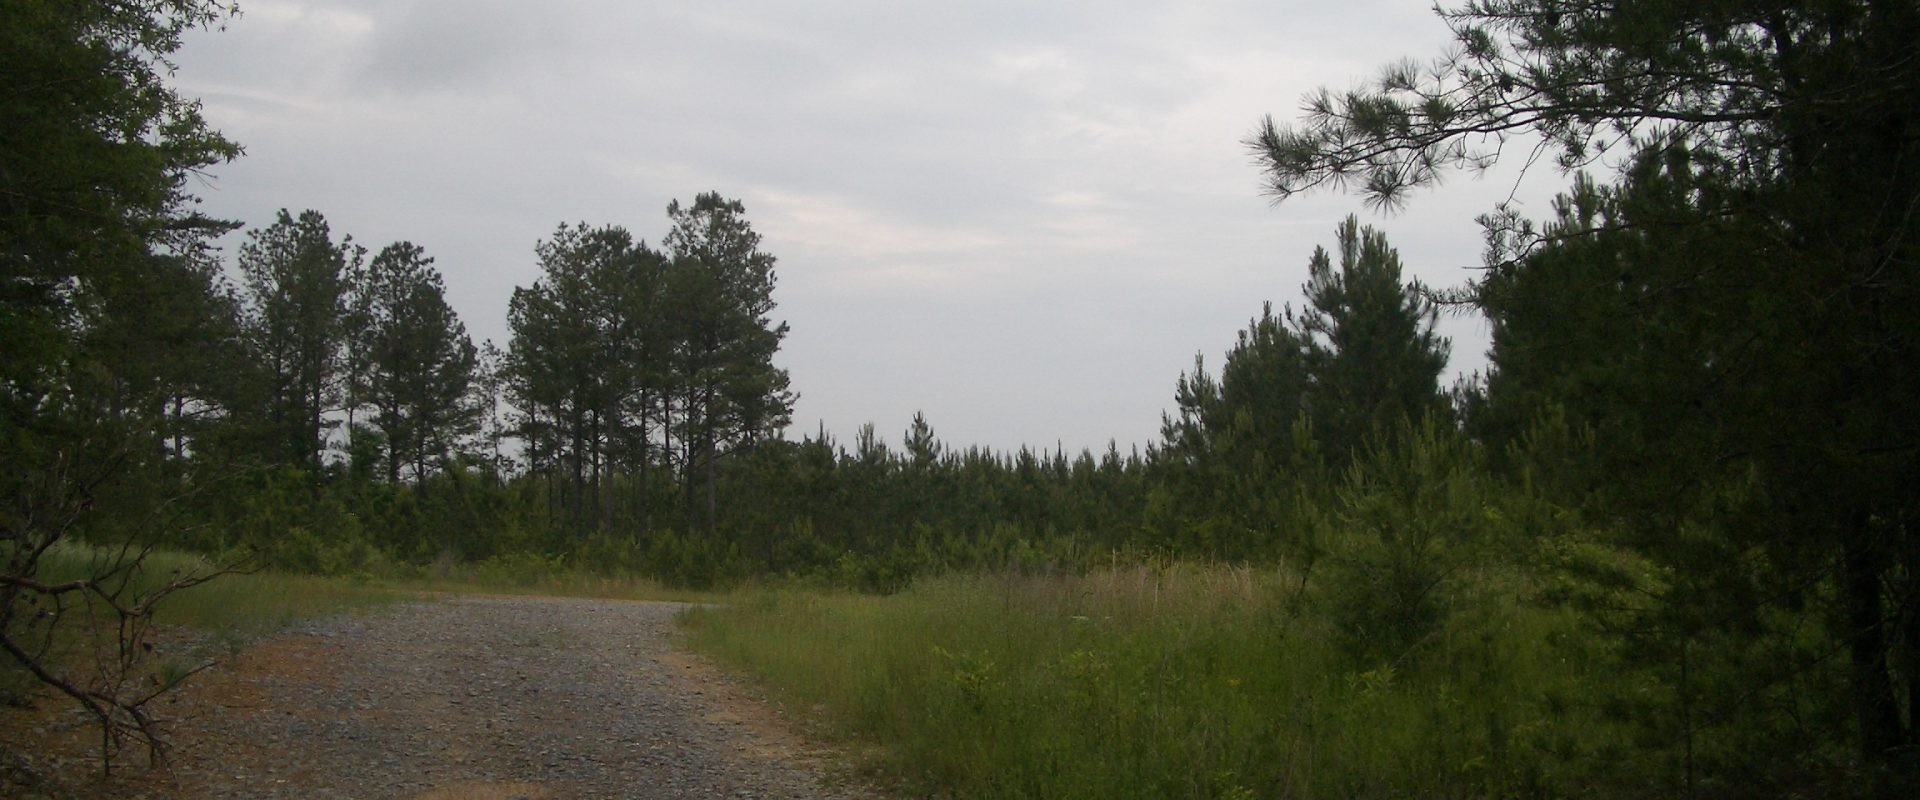 508 Acre Tree Farm – Hwy 100